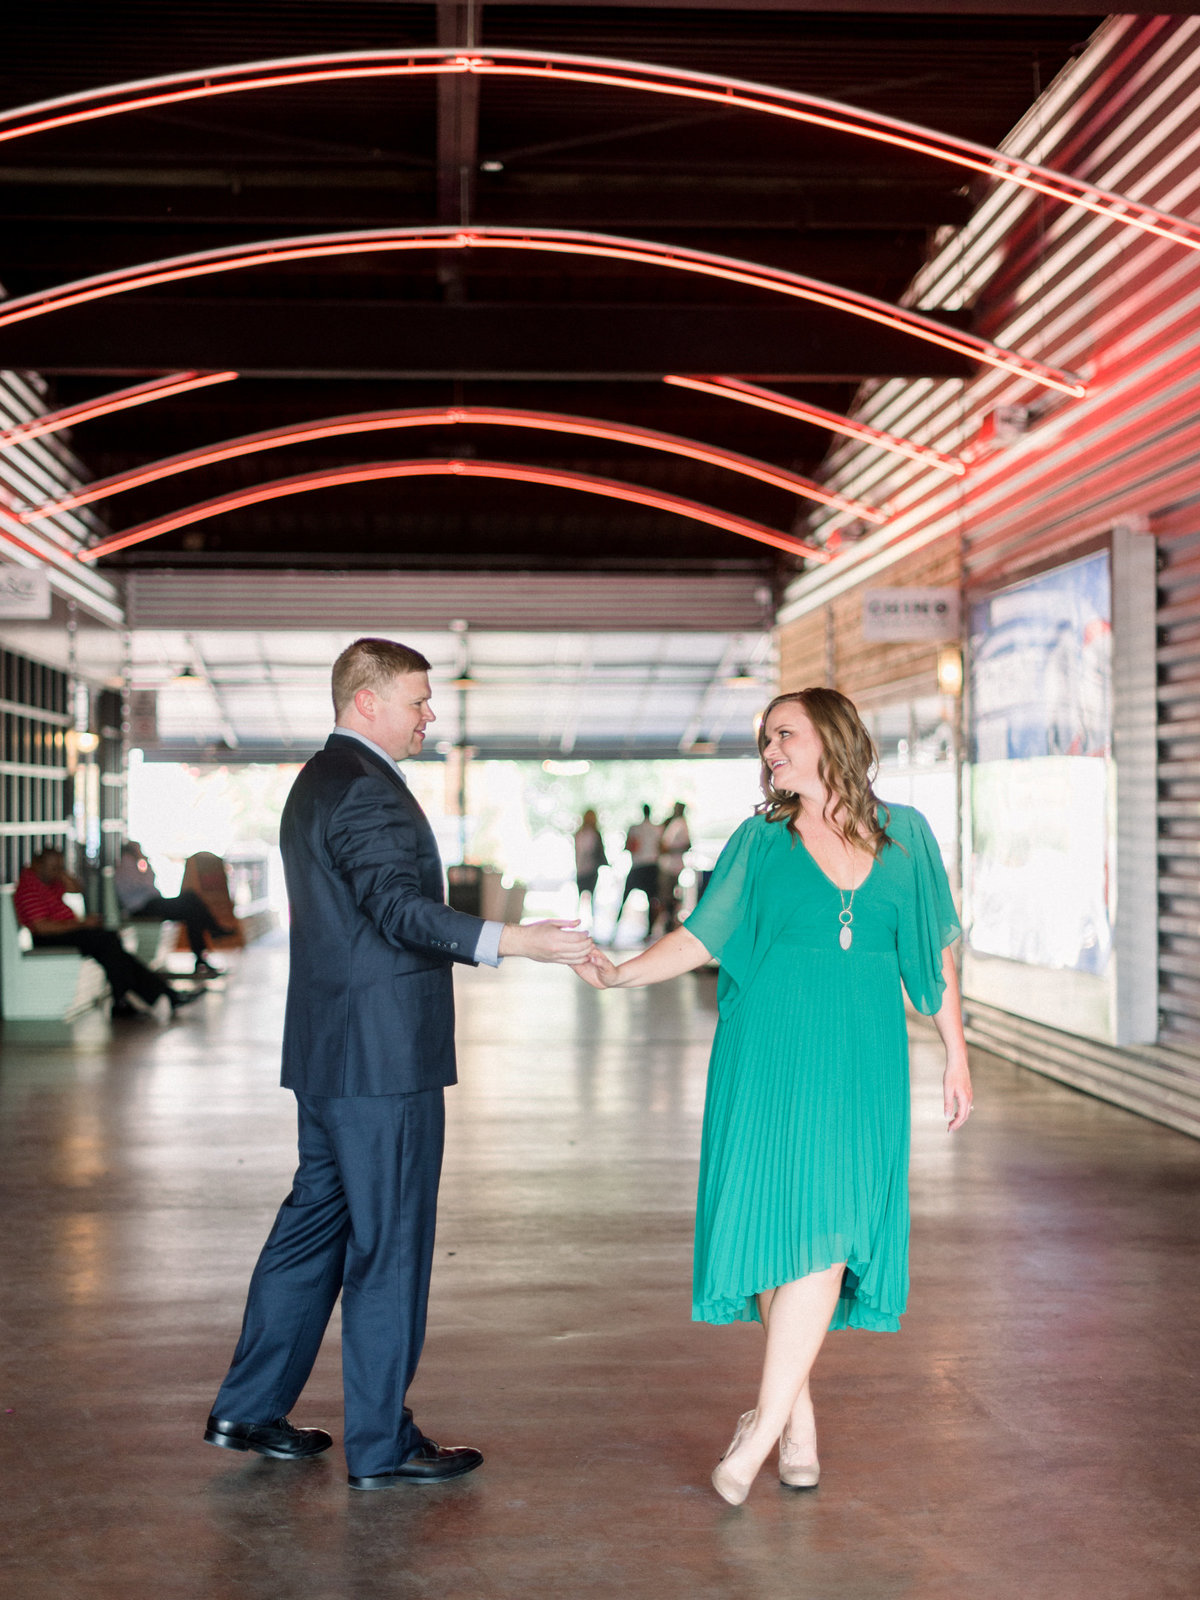 Courtney Hanson Photography - Downtown Dallas Engagement Session-7088